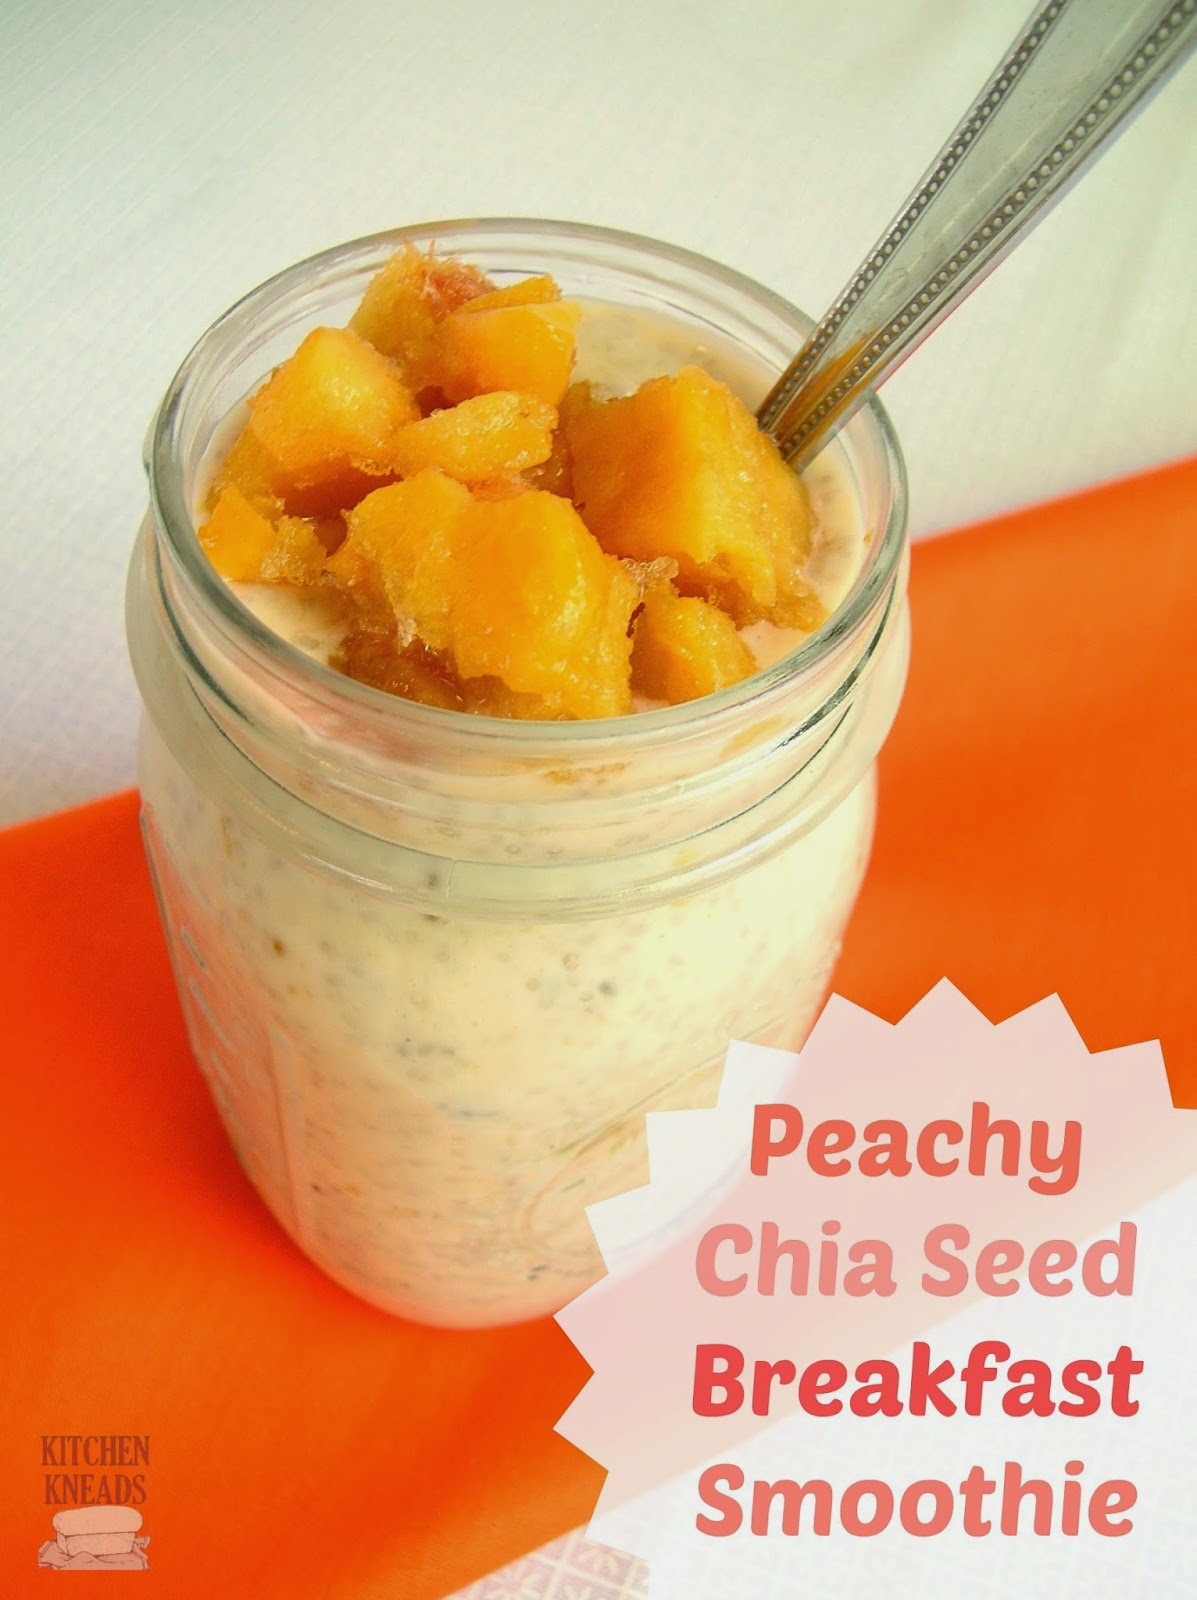 Peachy Chia Seed Breakfast Smoothie Kitchen Kneads